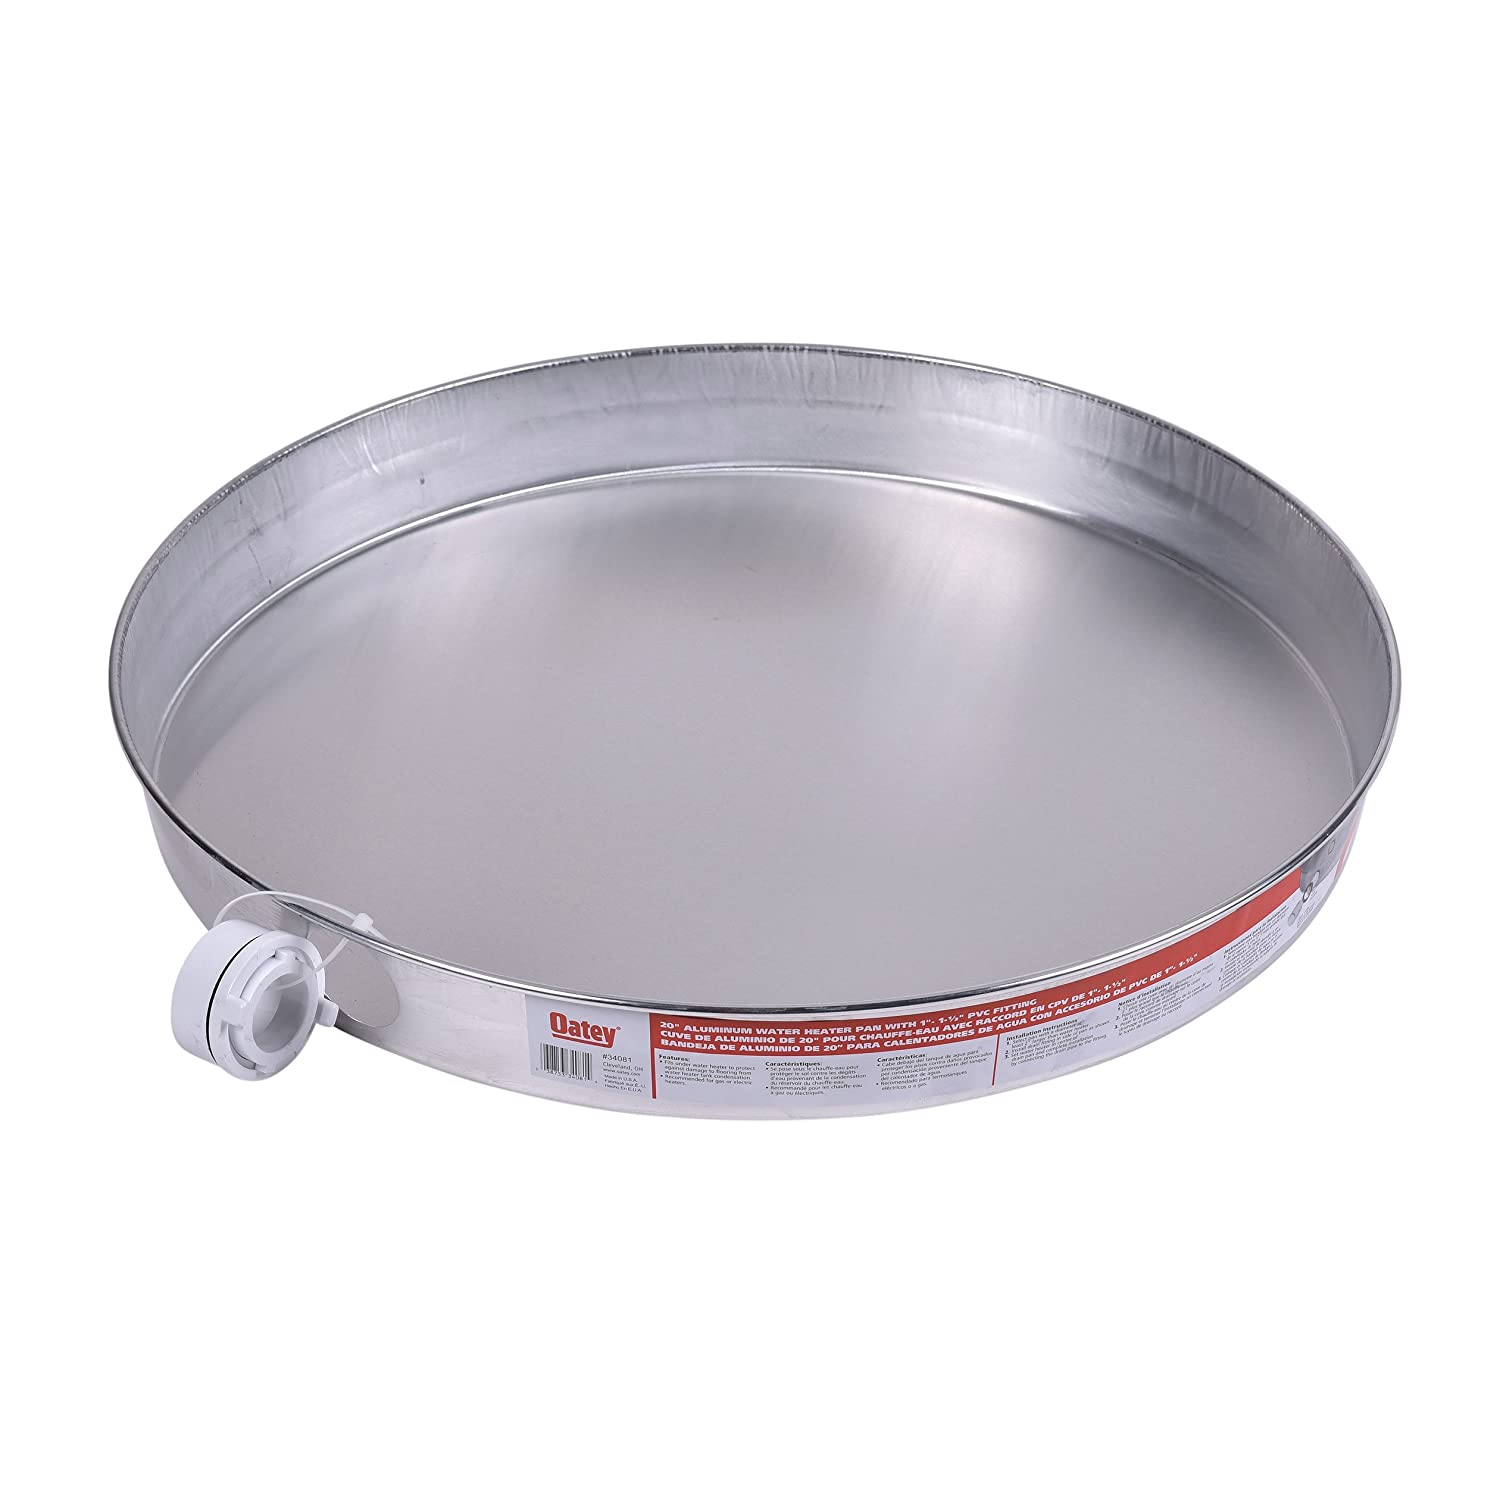 Oatey 34081 Aluminum Pan with 1-1/2-Inch PVC Fitting, Pan Pre-Drilled Hole, 20-Inch - Water Heater Replacement Parts - Amazon.com